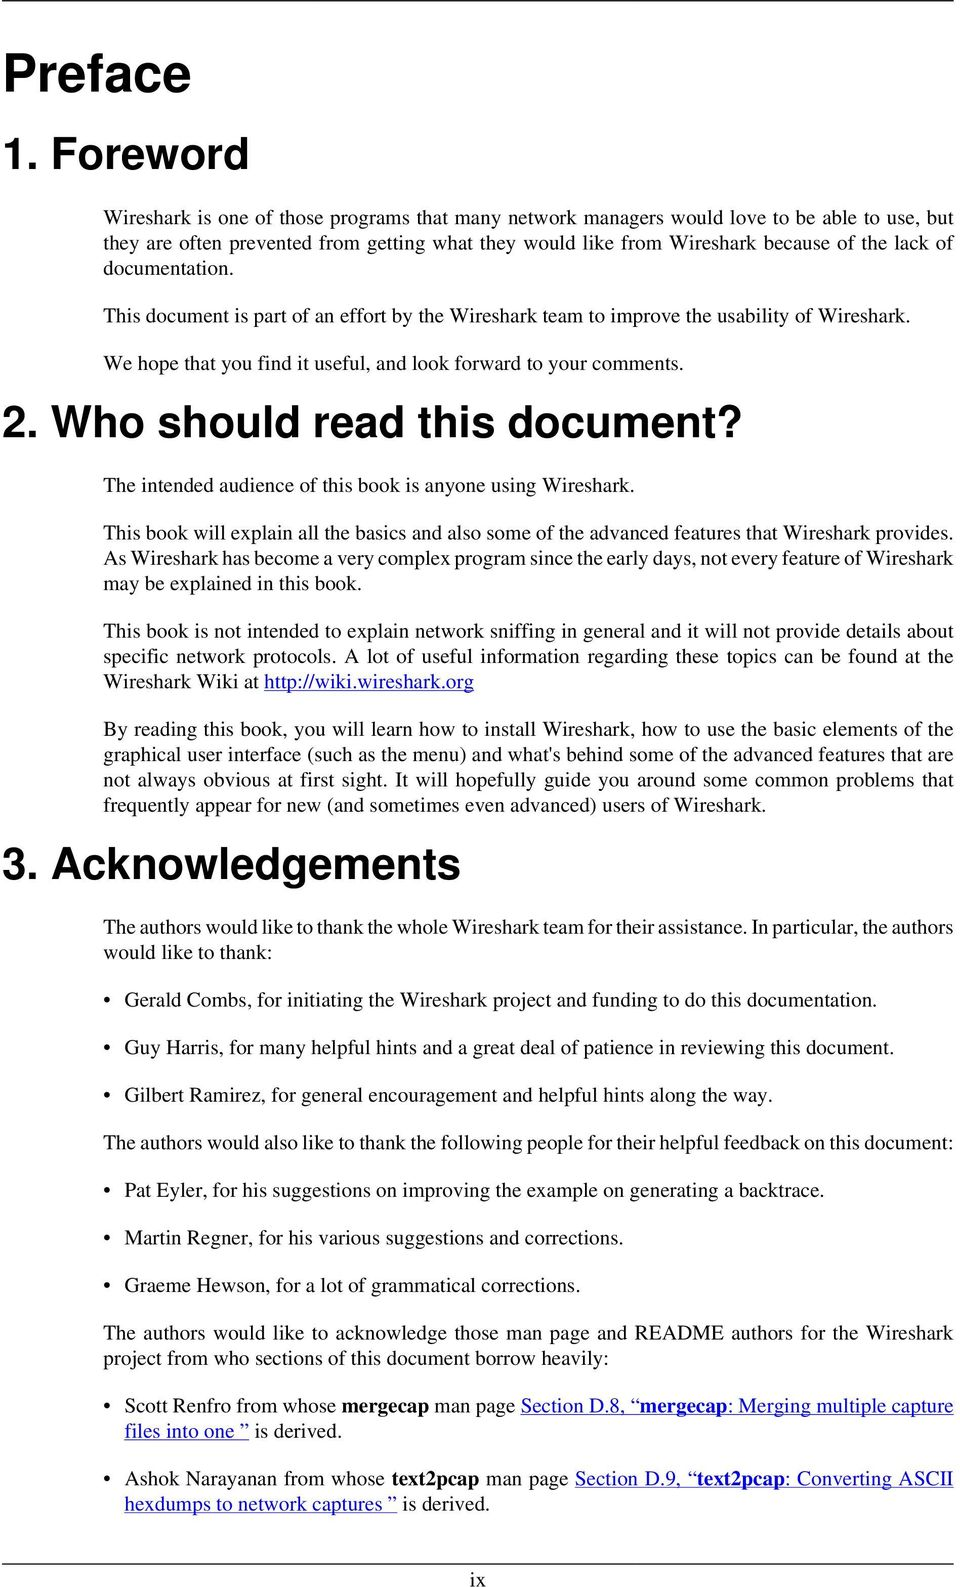 of documentation. This document is part of an effort by the Wireshark team to improve the usability of Wireshark. We hope that you find it useful, and look forward to your comments. 2.